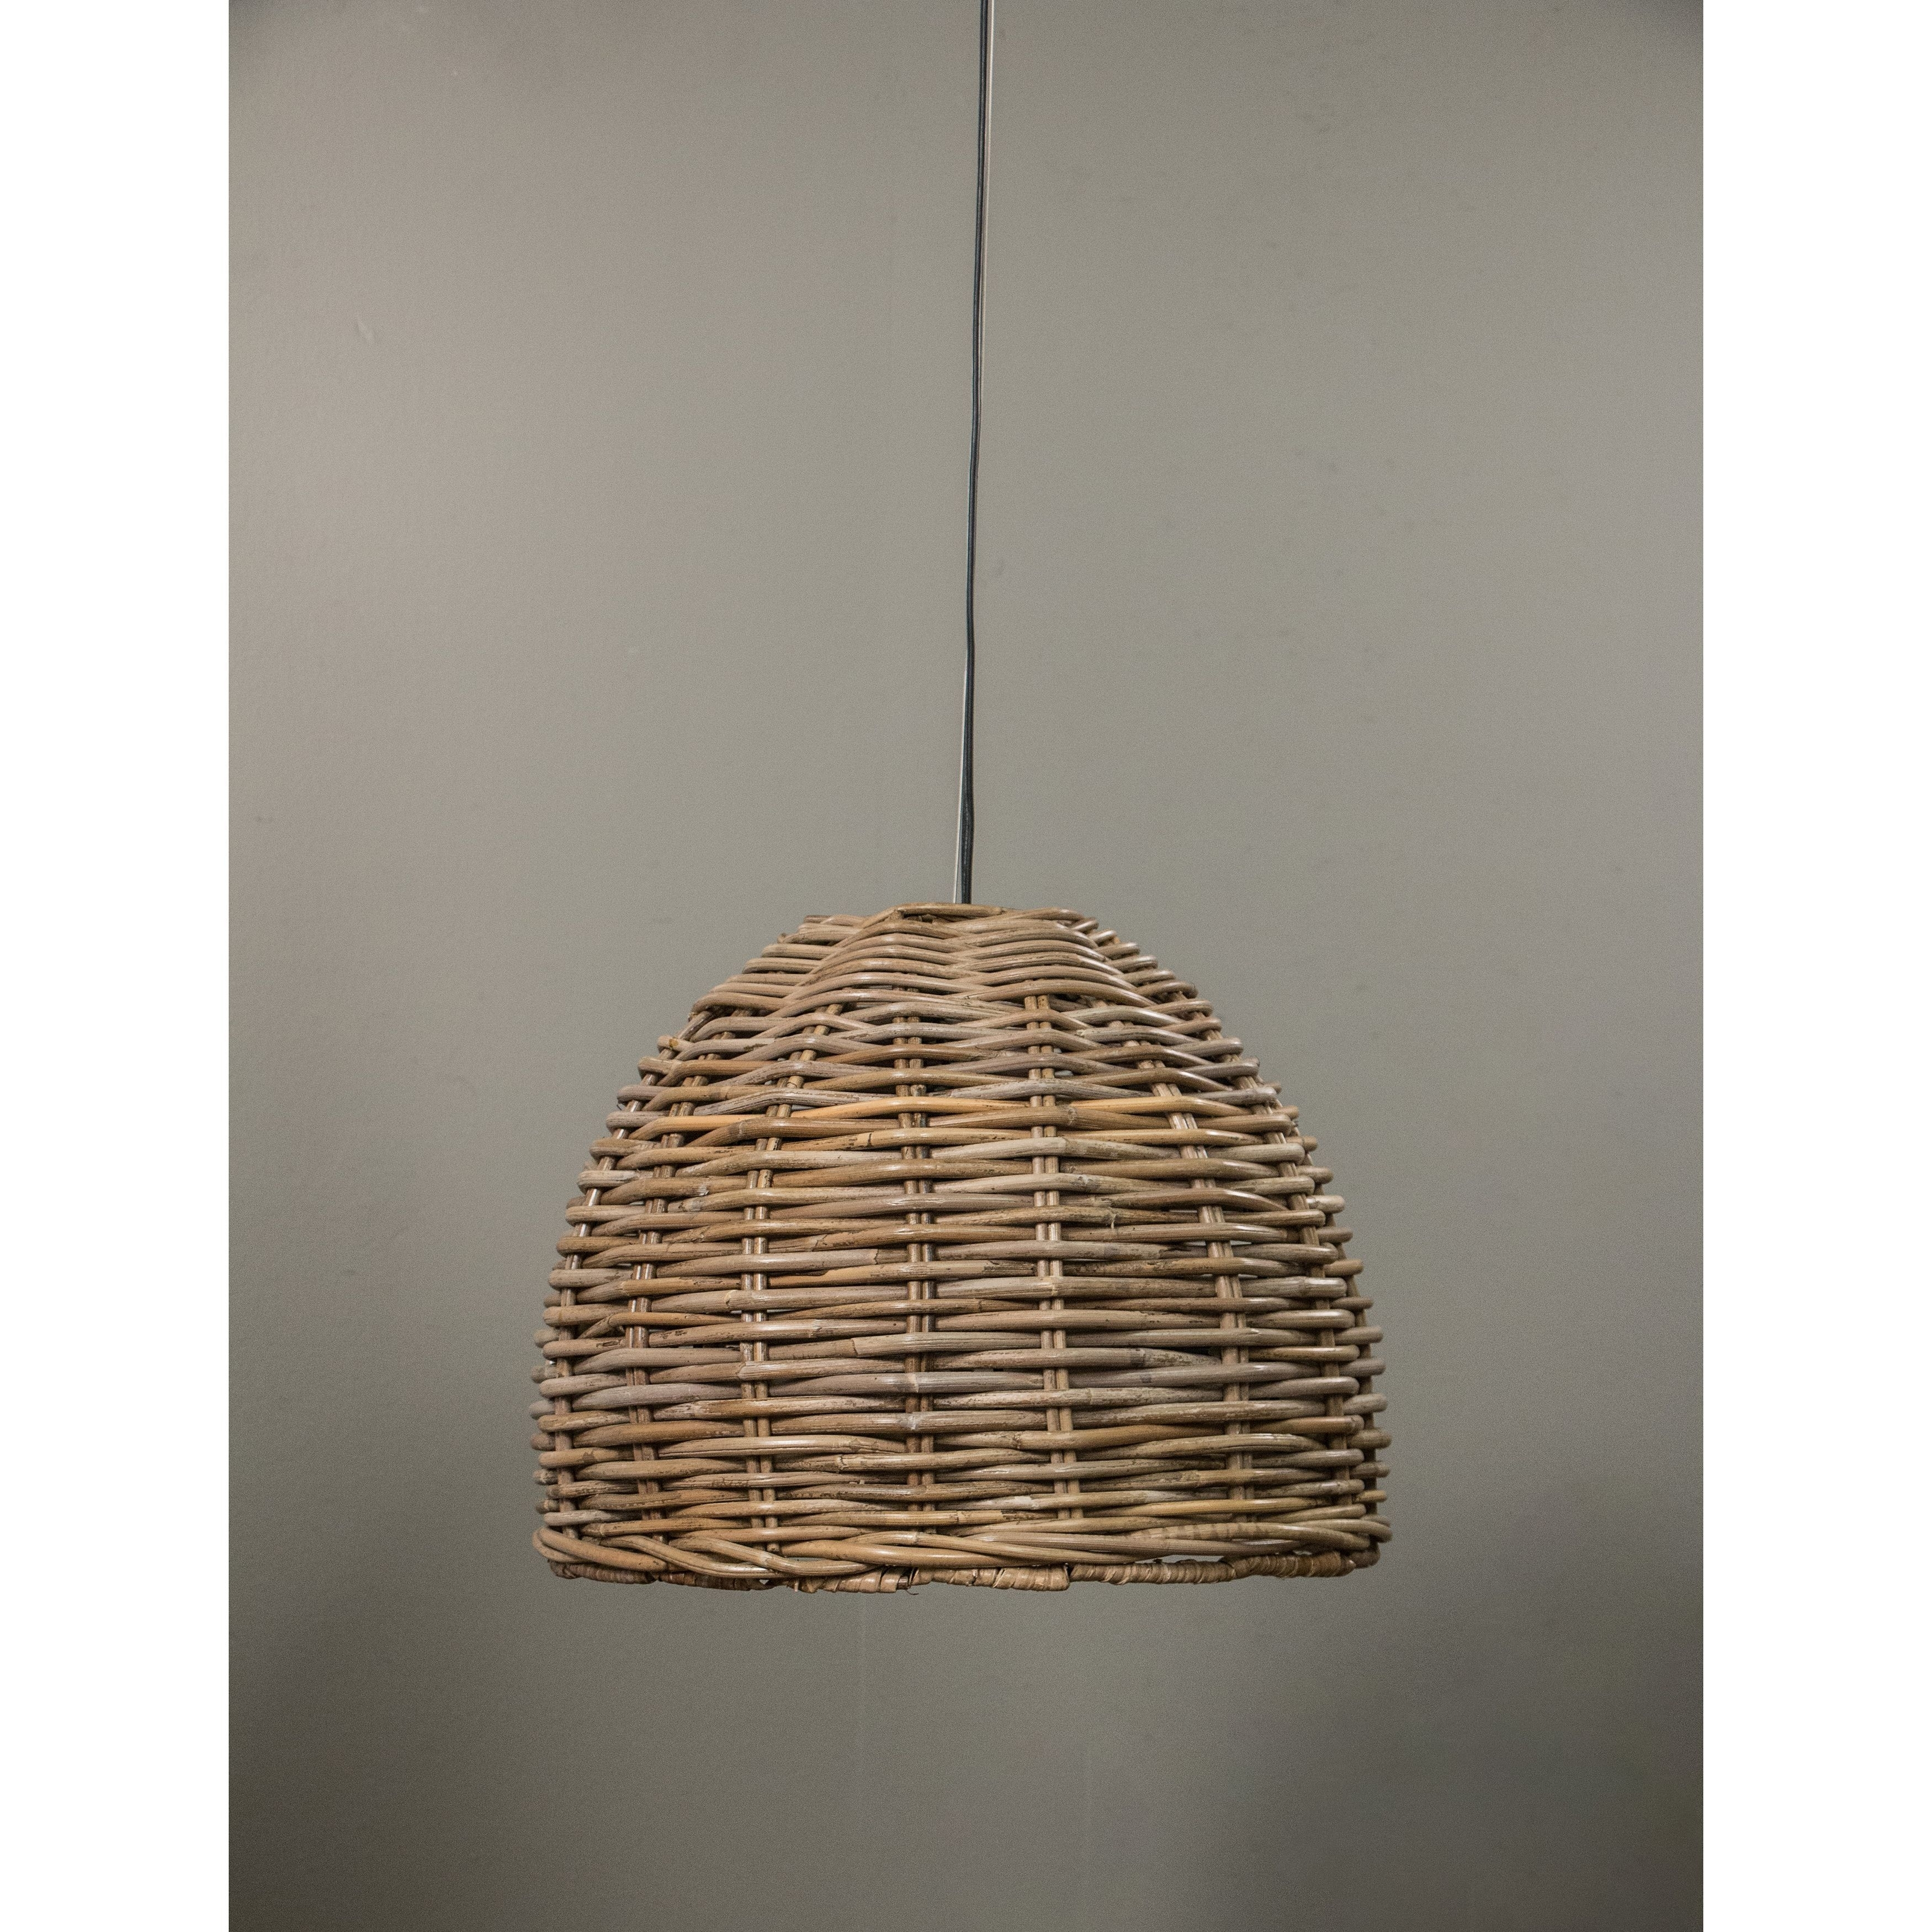 Our Dawson Hanging Lamp Is Made With The Natural Material, Rattan Intended For Outdoor Rattan Hanging Lights (#13 of 15)